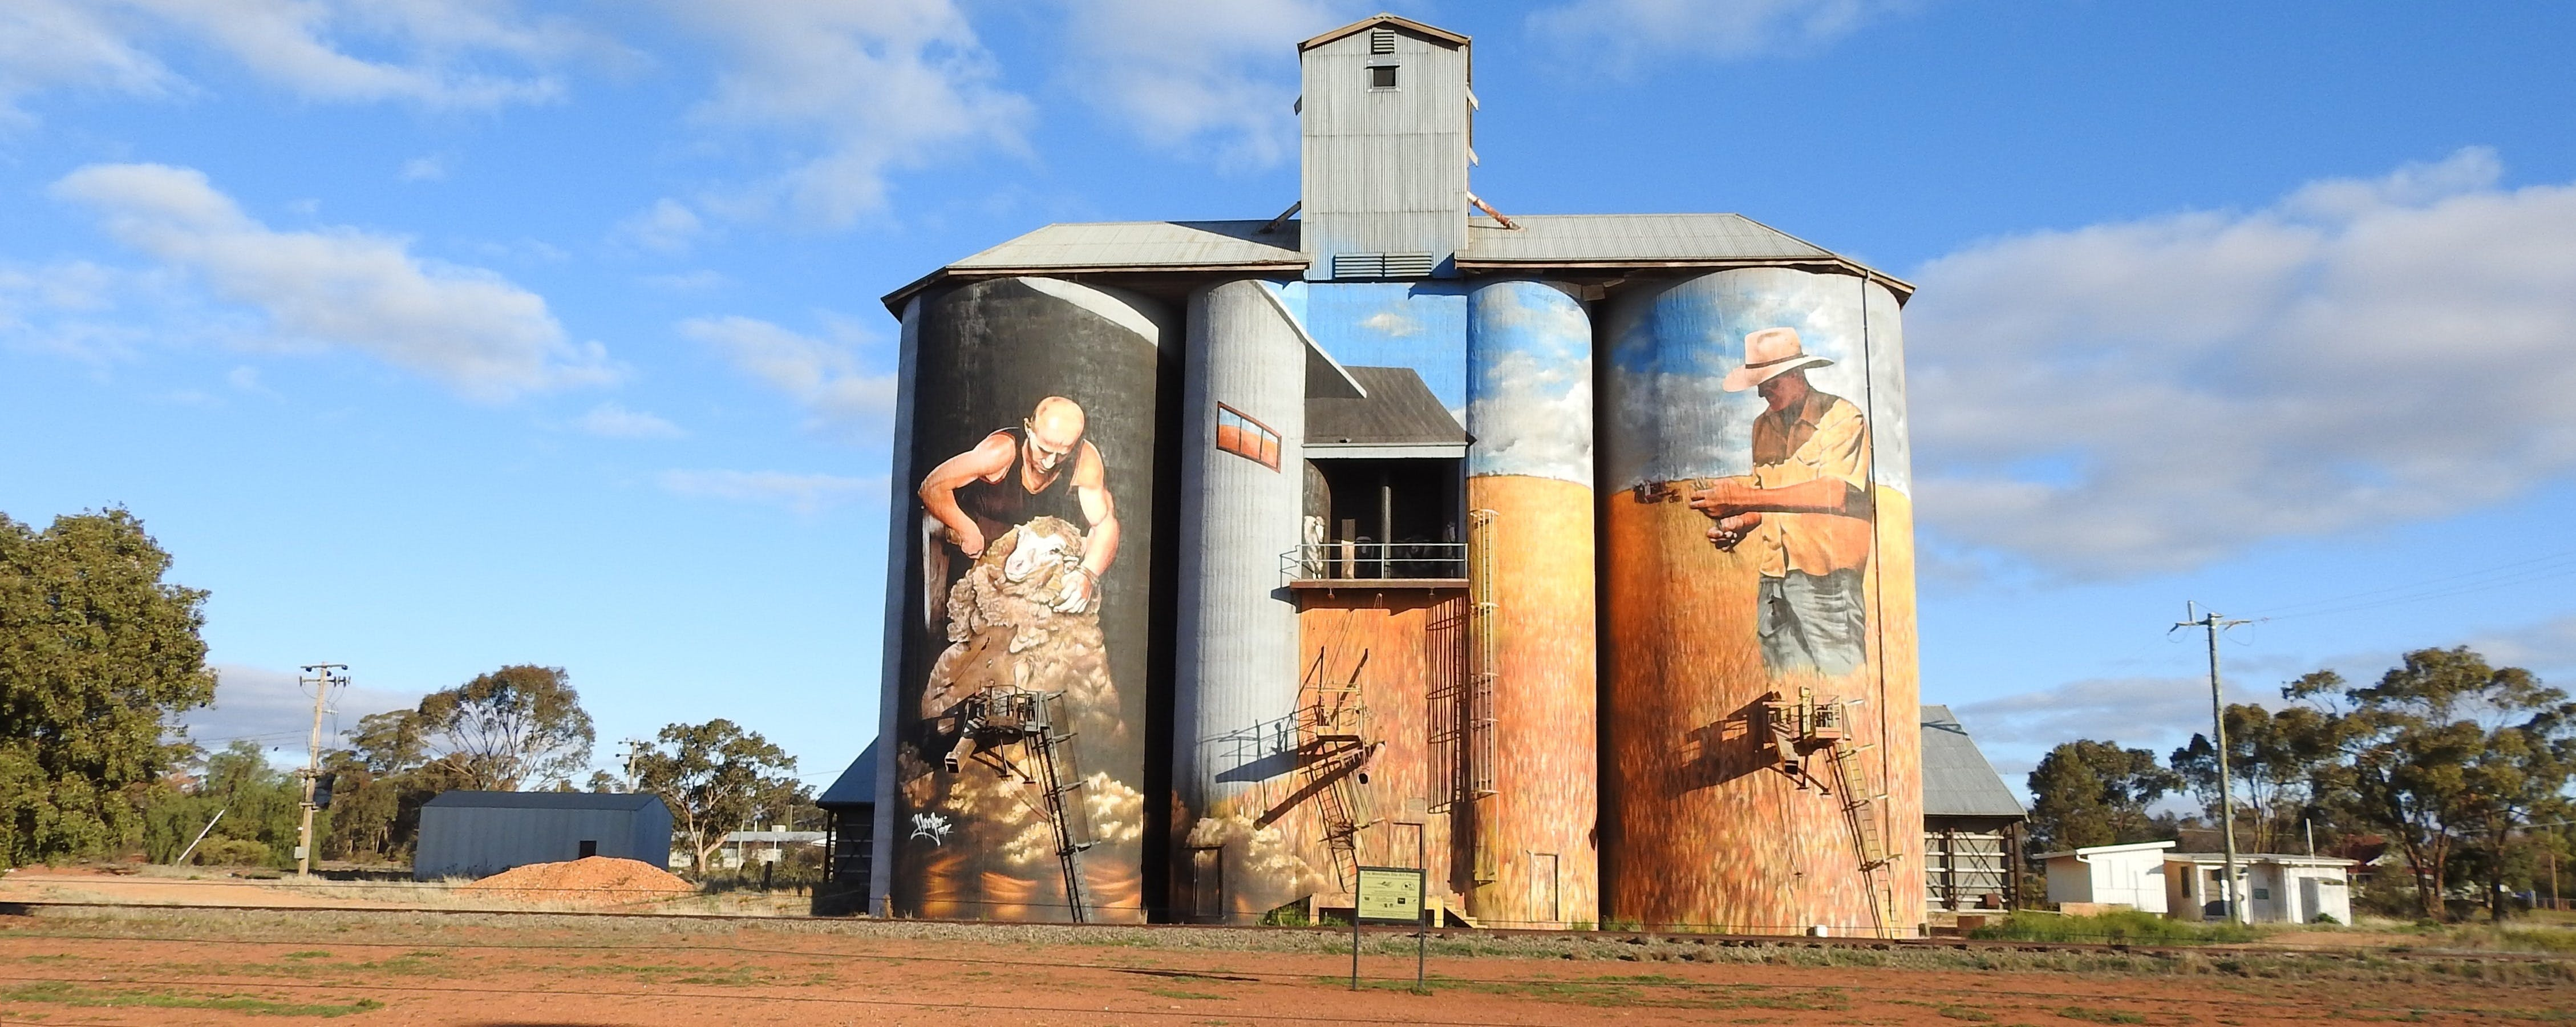 Riverina Outdoor Art Trail - Accommodation BNB